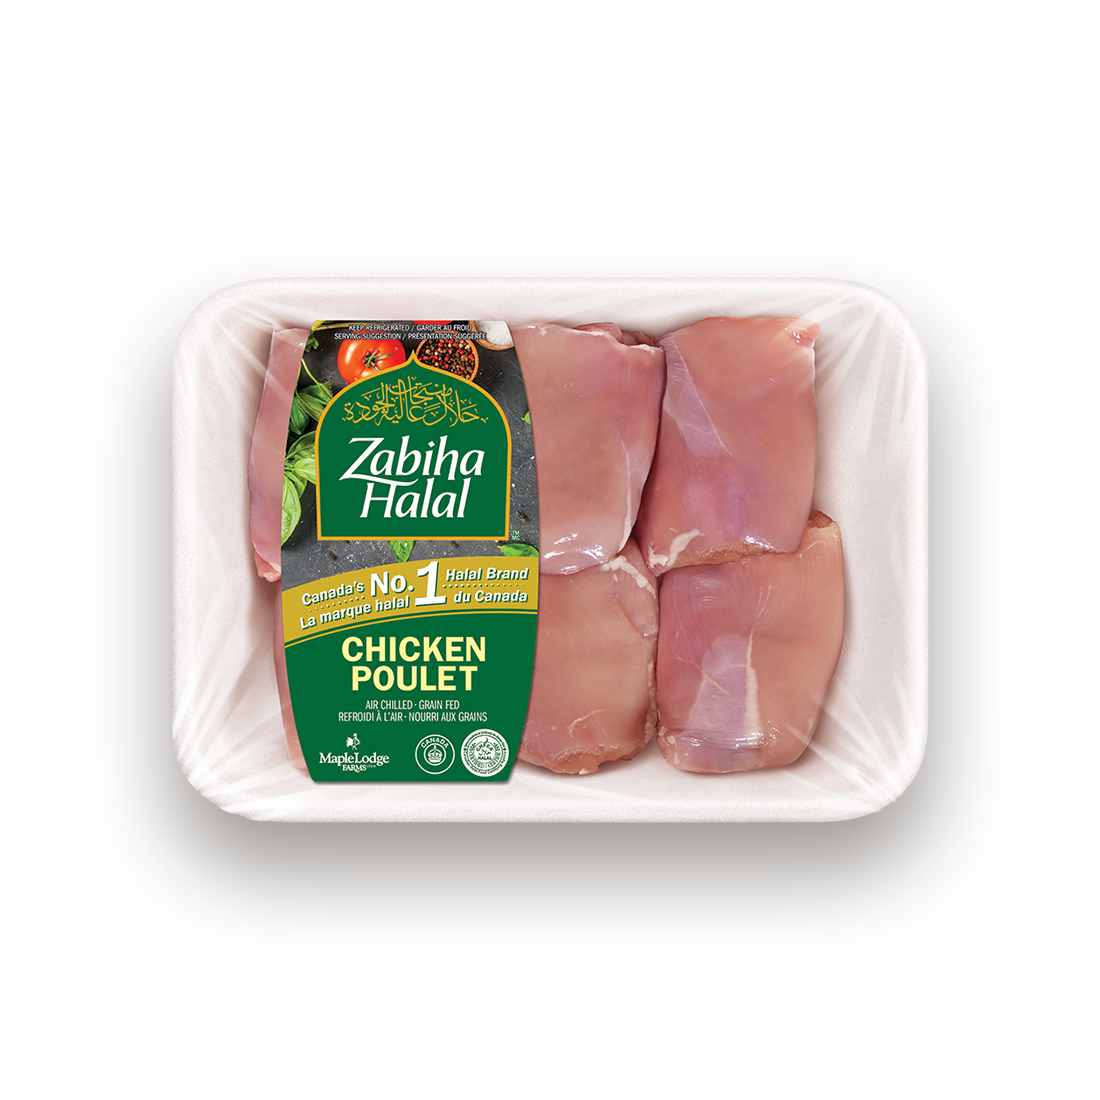 A package of fresh Boneless, Skinless Chicken Thighs